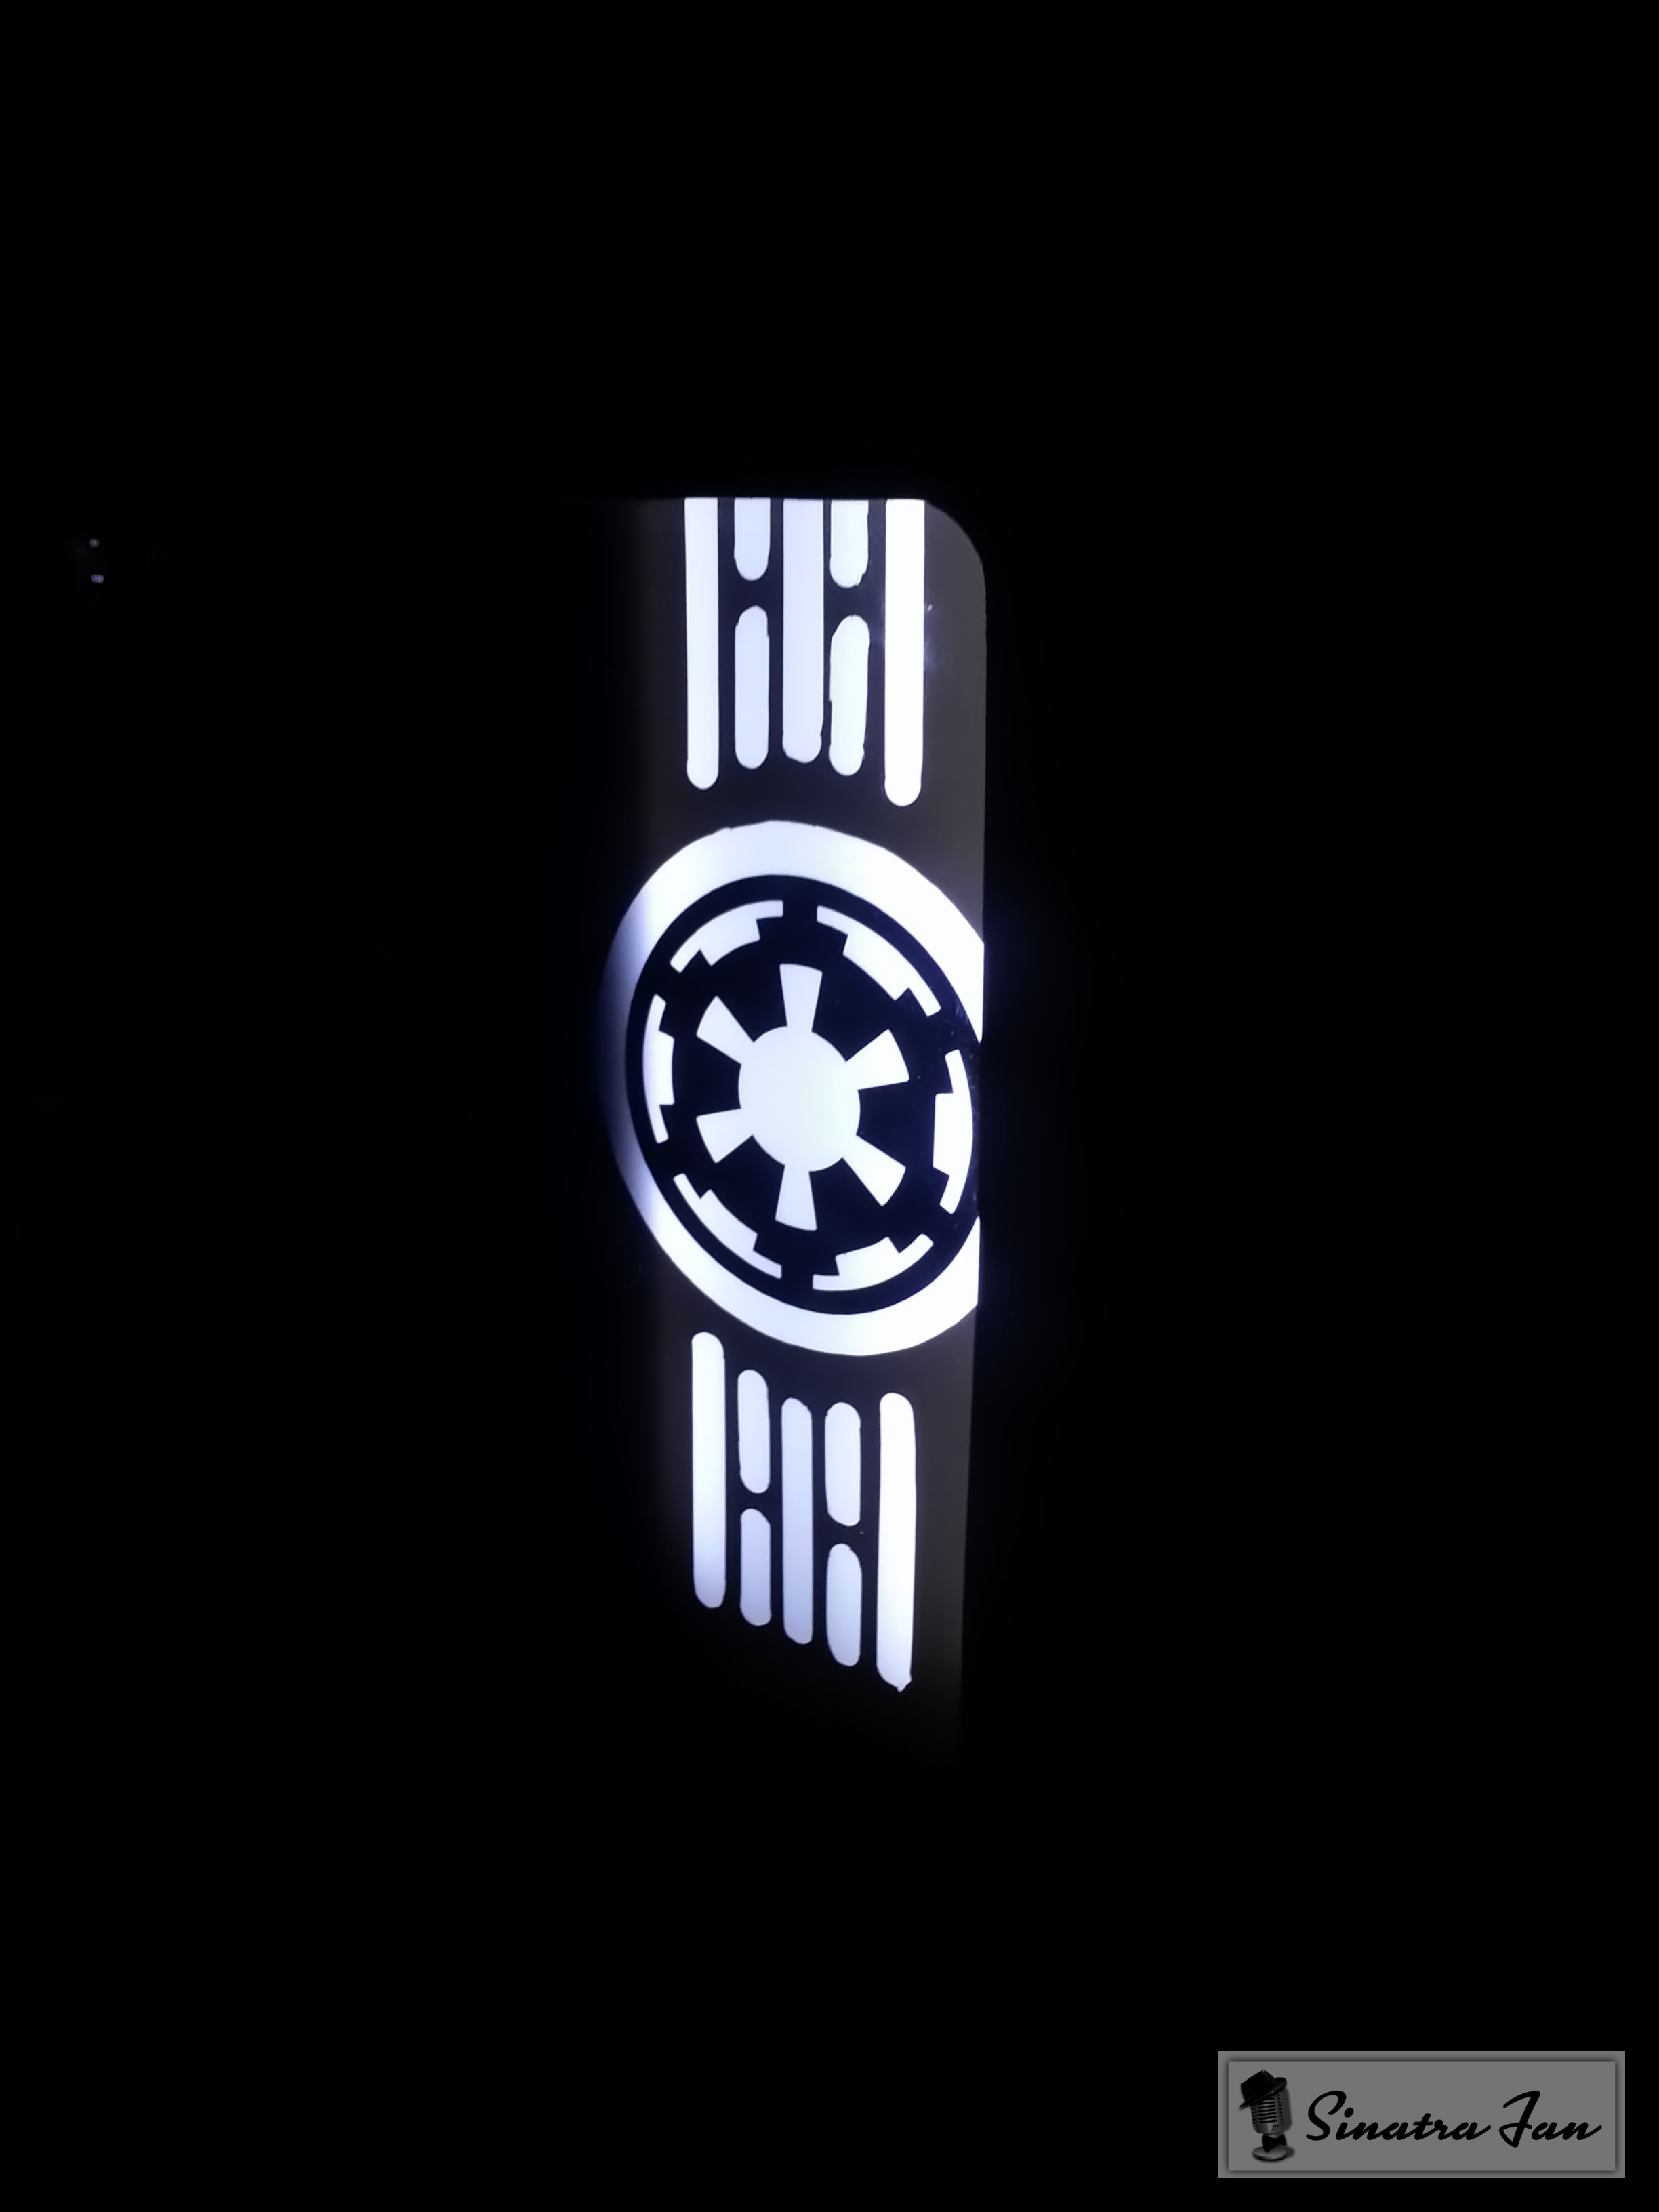 Build Log Project Death Star Haf X Cube 4930k Beast Page 39 Panel Dada C70 Simbol When Putting Light On The Logo Wall It Looks Good From Afar But I May Have To Redo Or Get Someone Laser Cut Vinyl